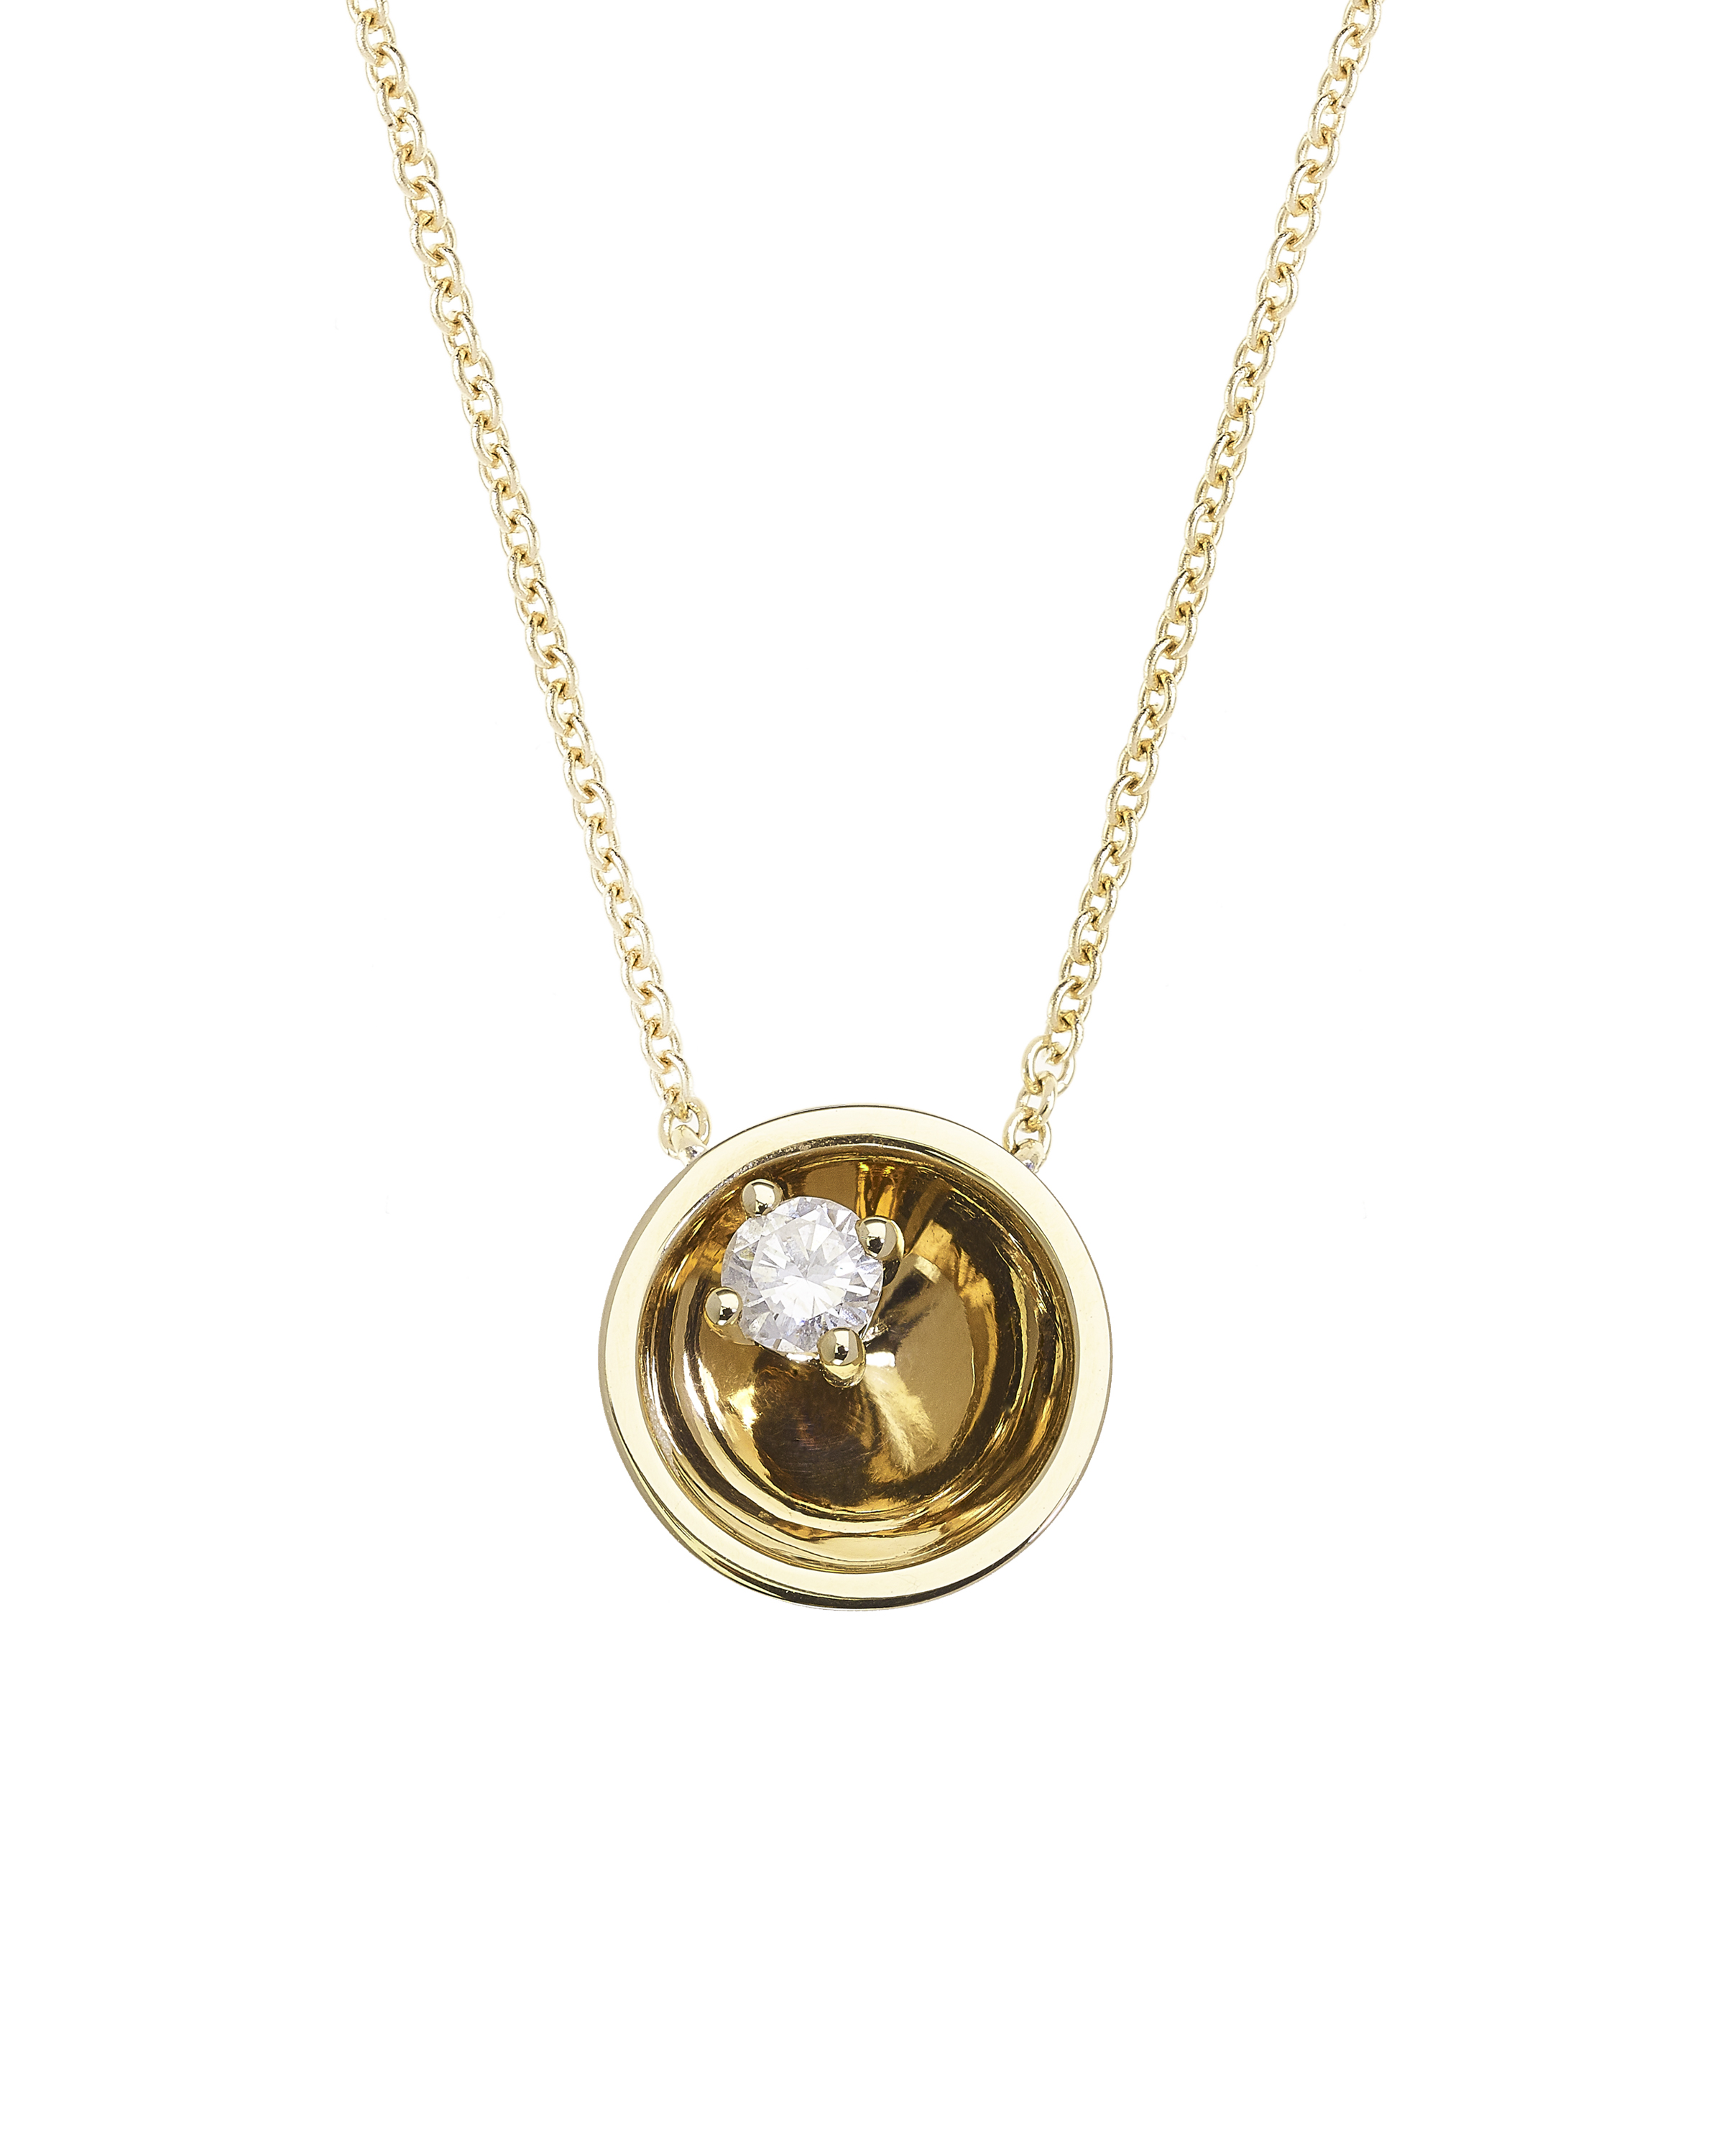 Large Floating Star Diamond Yellow Gold Necklace by Marmari on curated-crowd.com